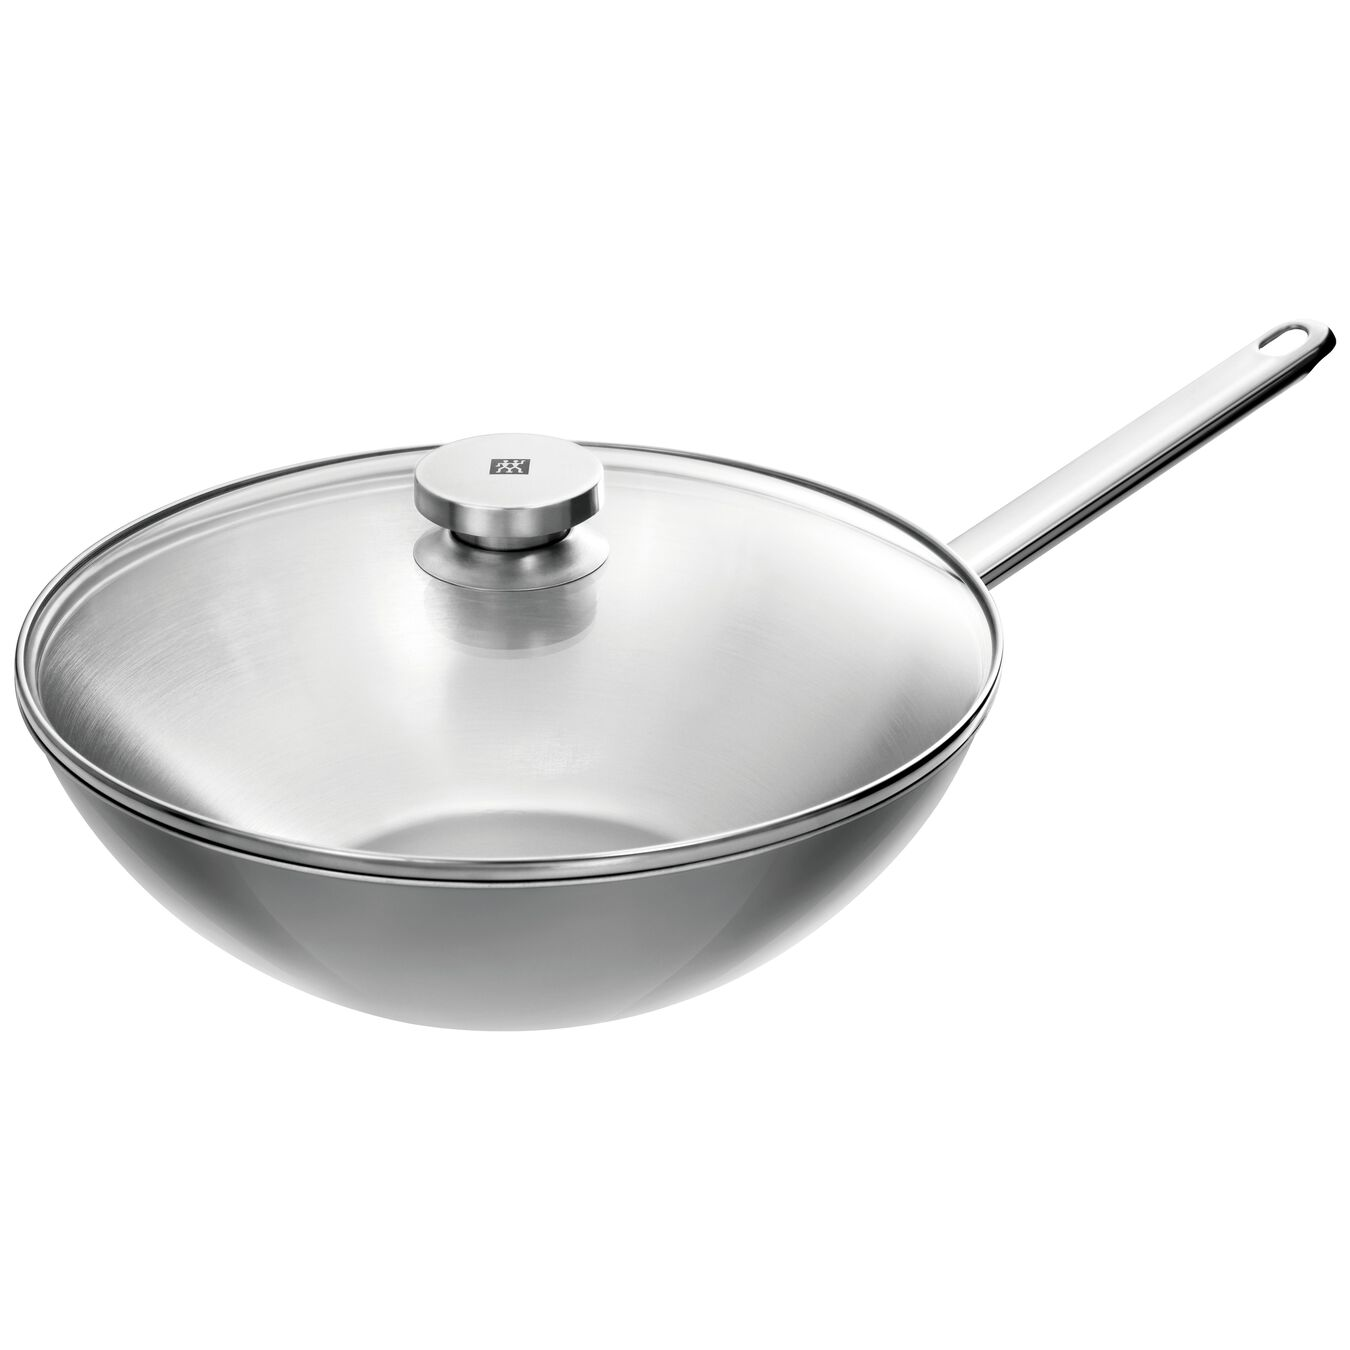 30 cm / 12 inch 18/10 Stainless Steel 5-Ply Wok With Glass Lid,,large 1